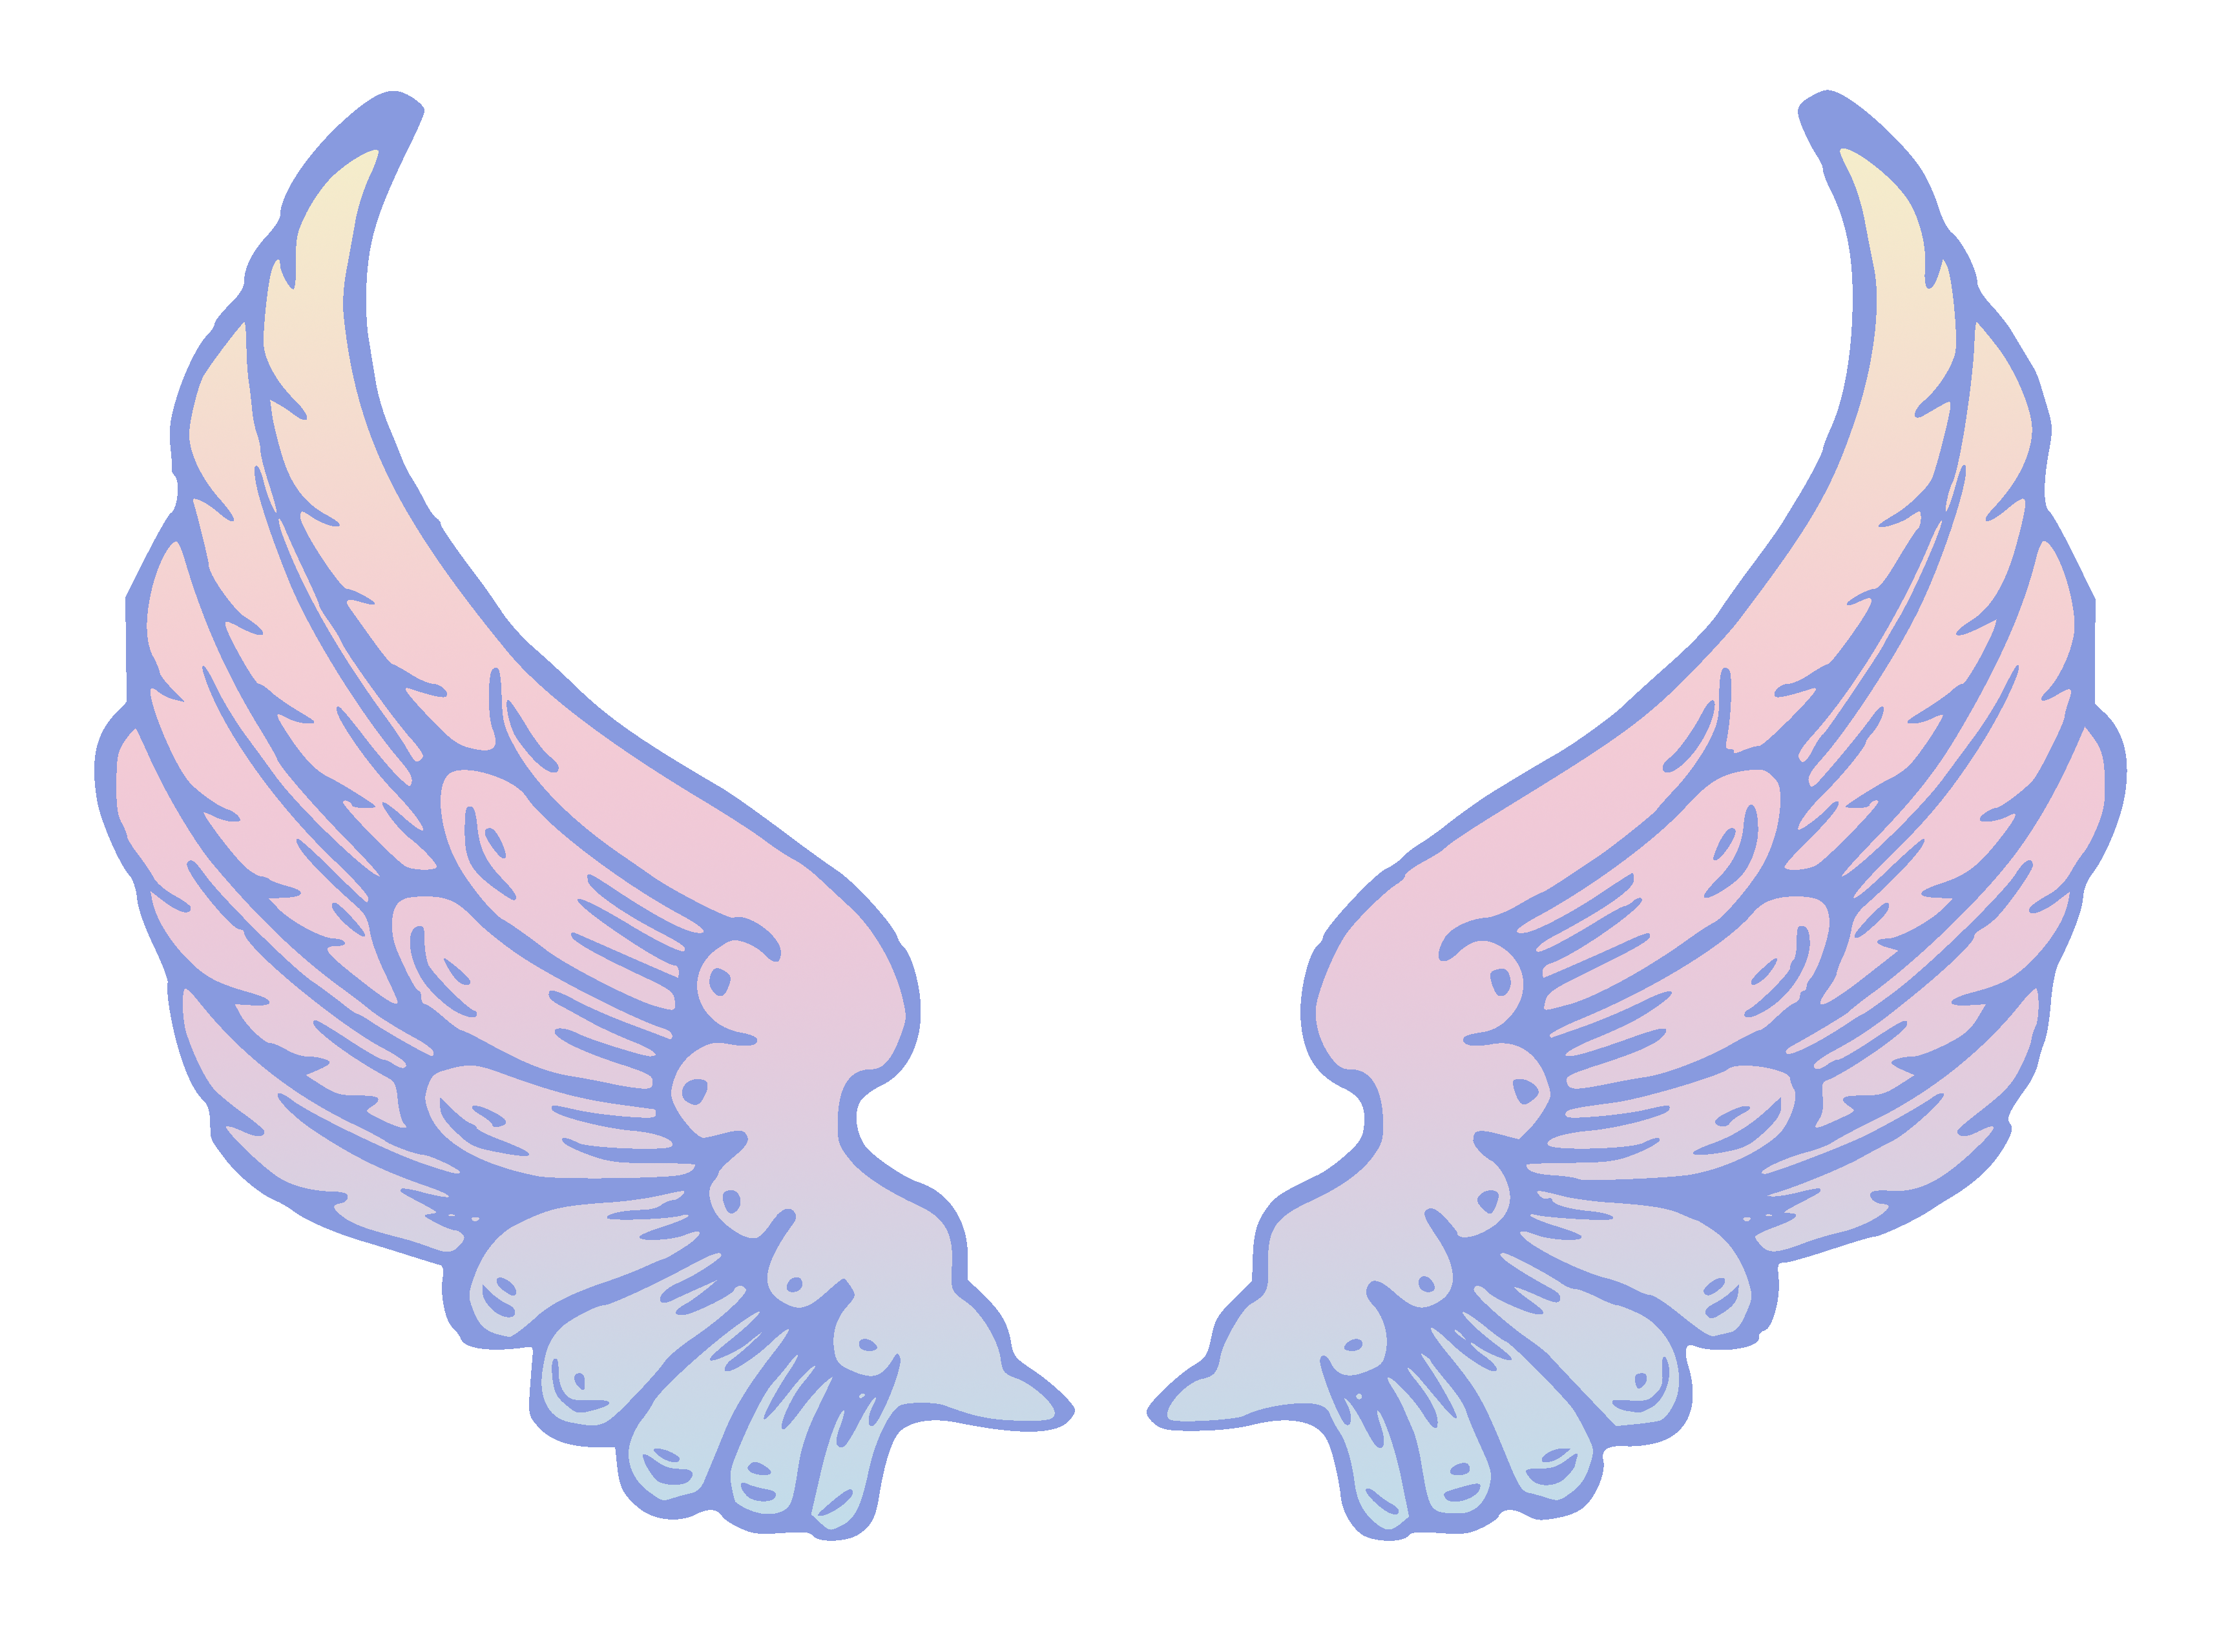 Baby angel wings png. Collection of clipart